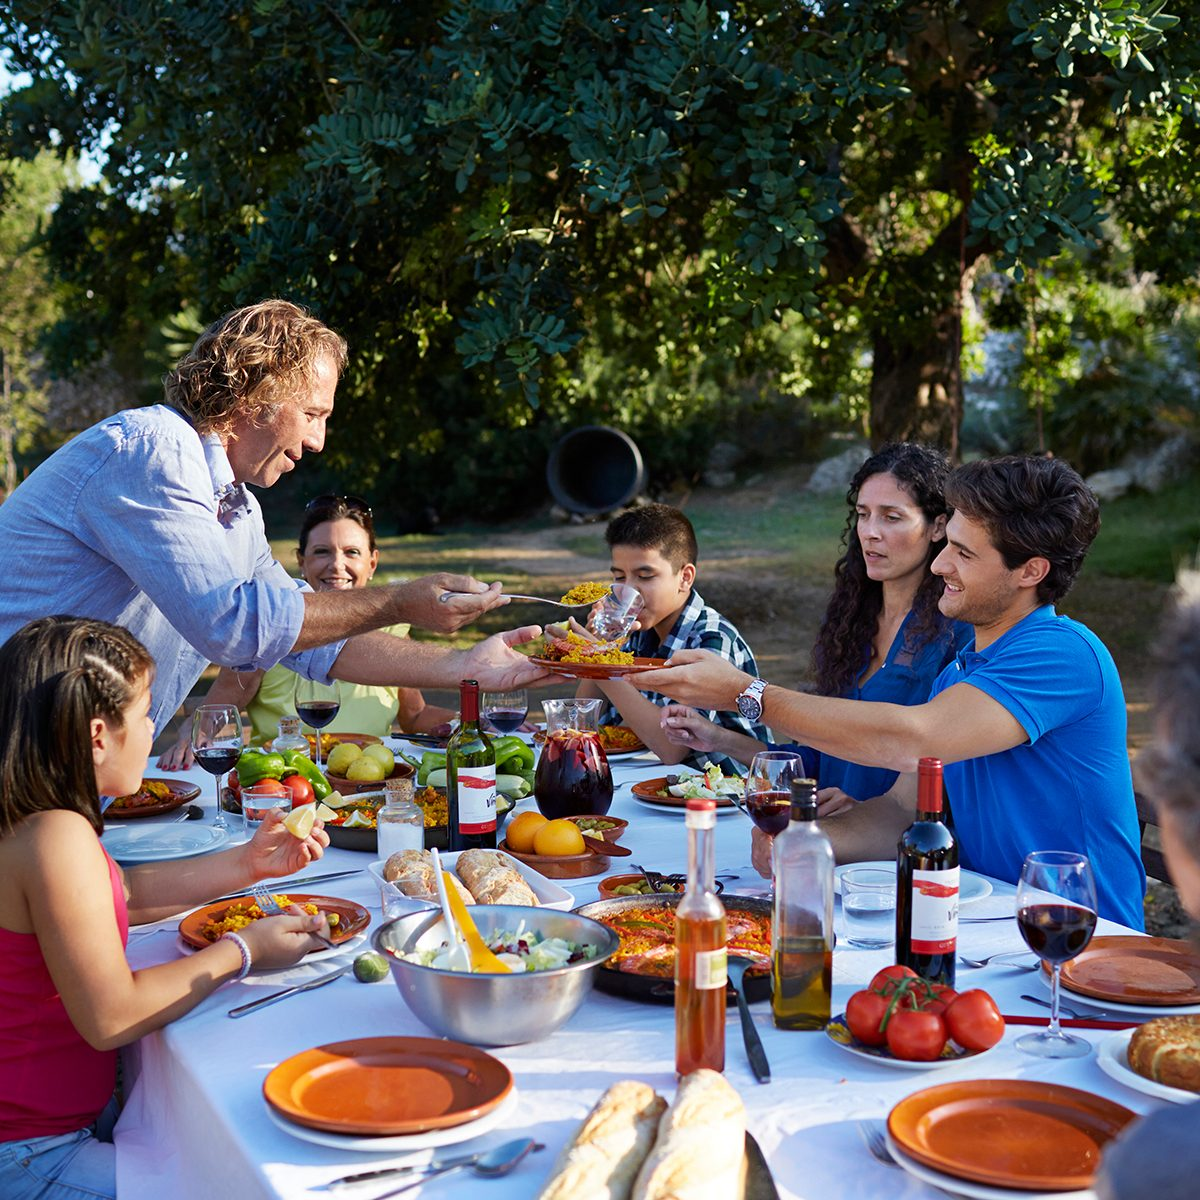 Multigenerational family together at dinner table at garden party in the sunset